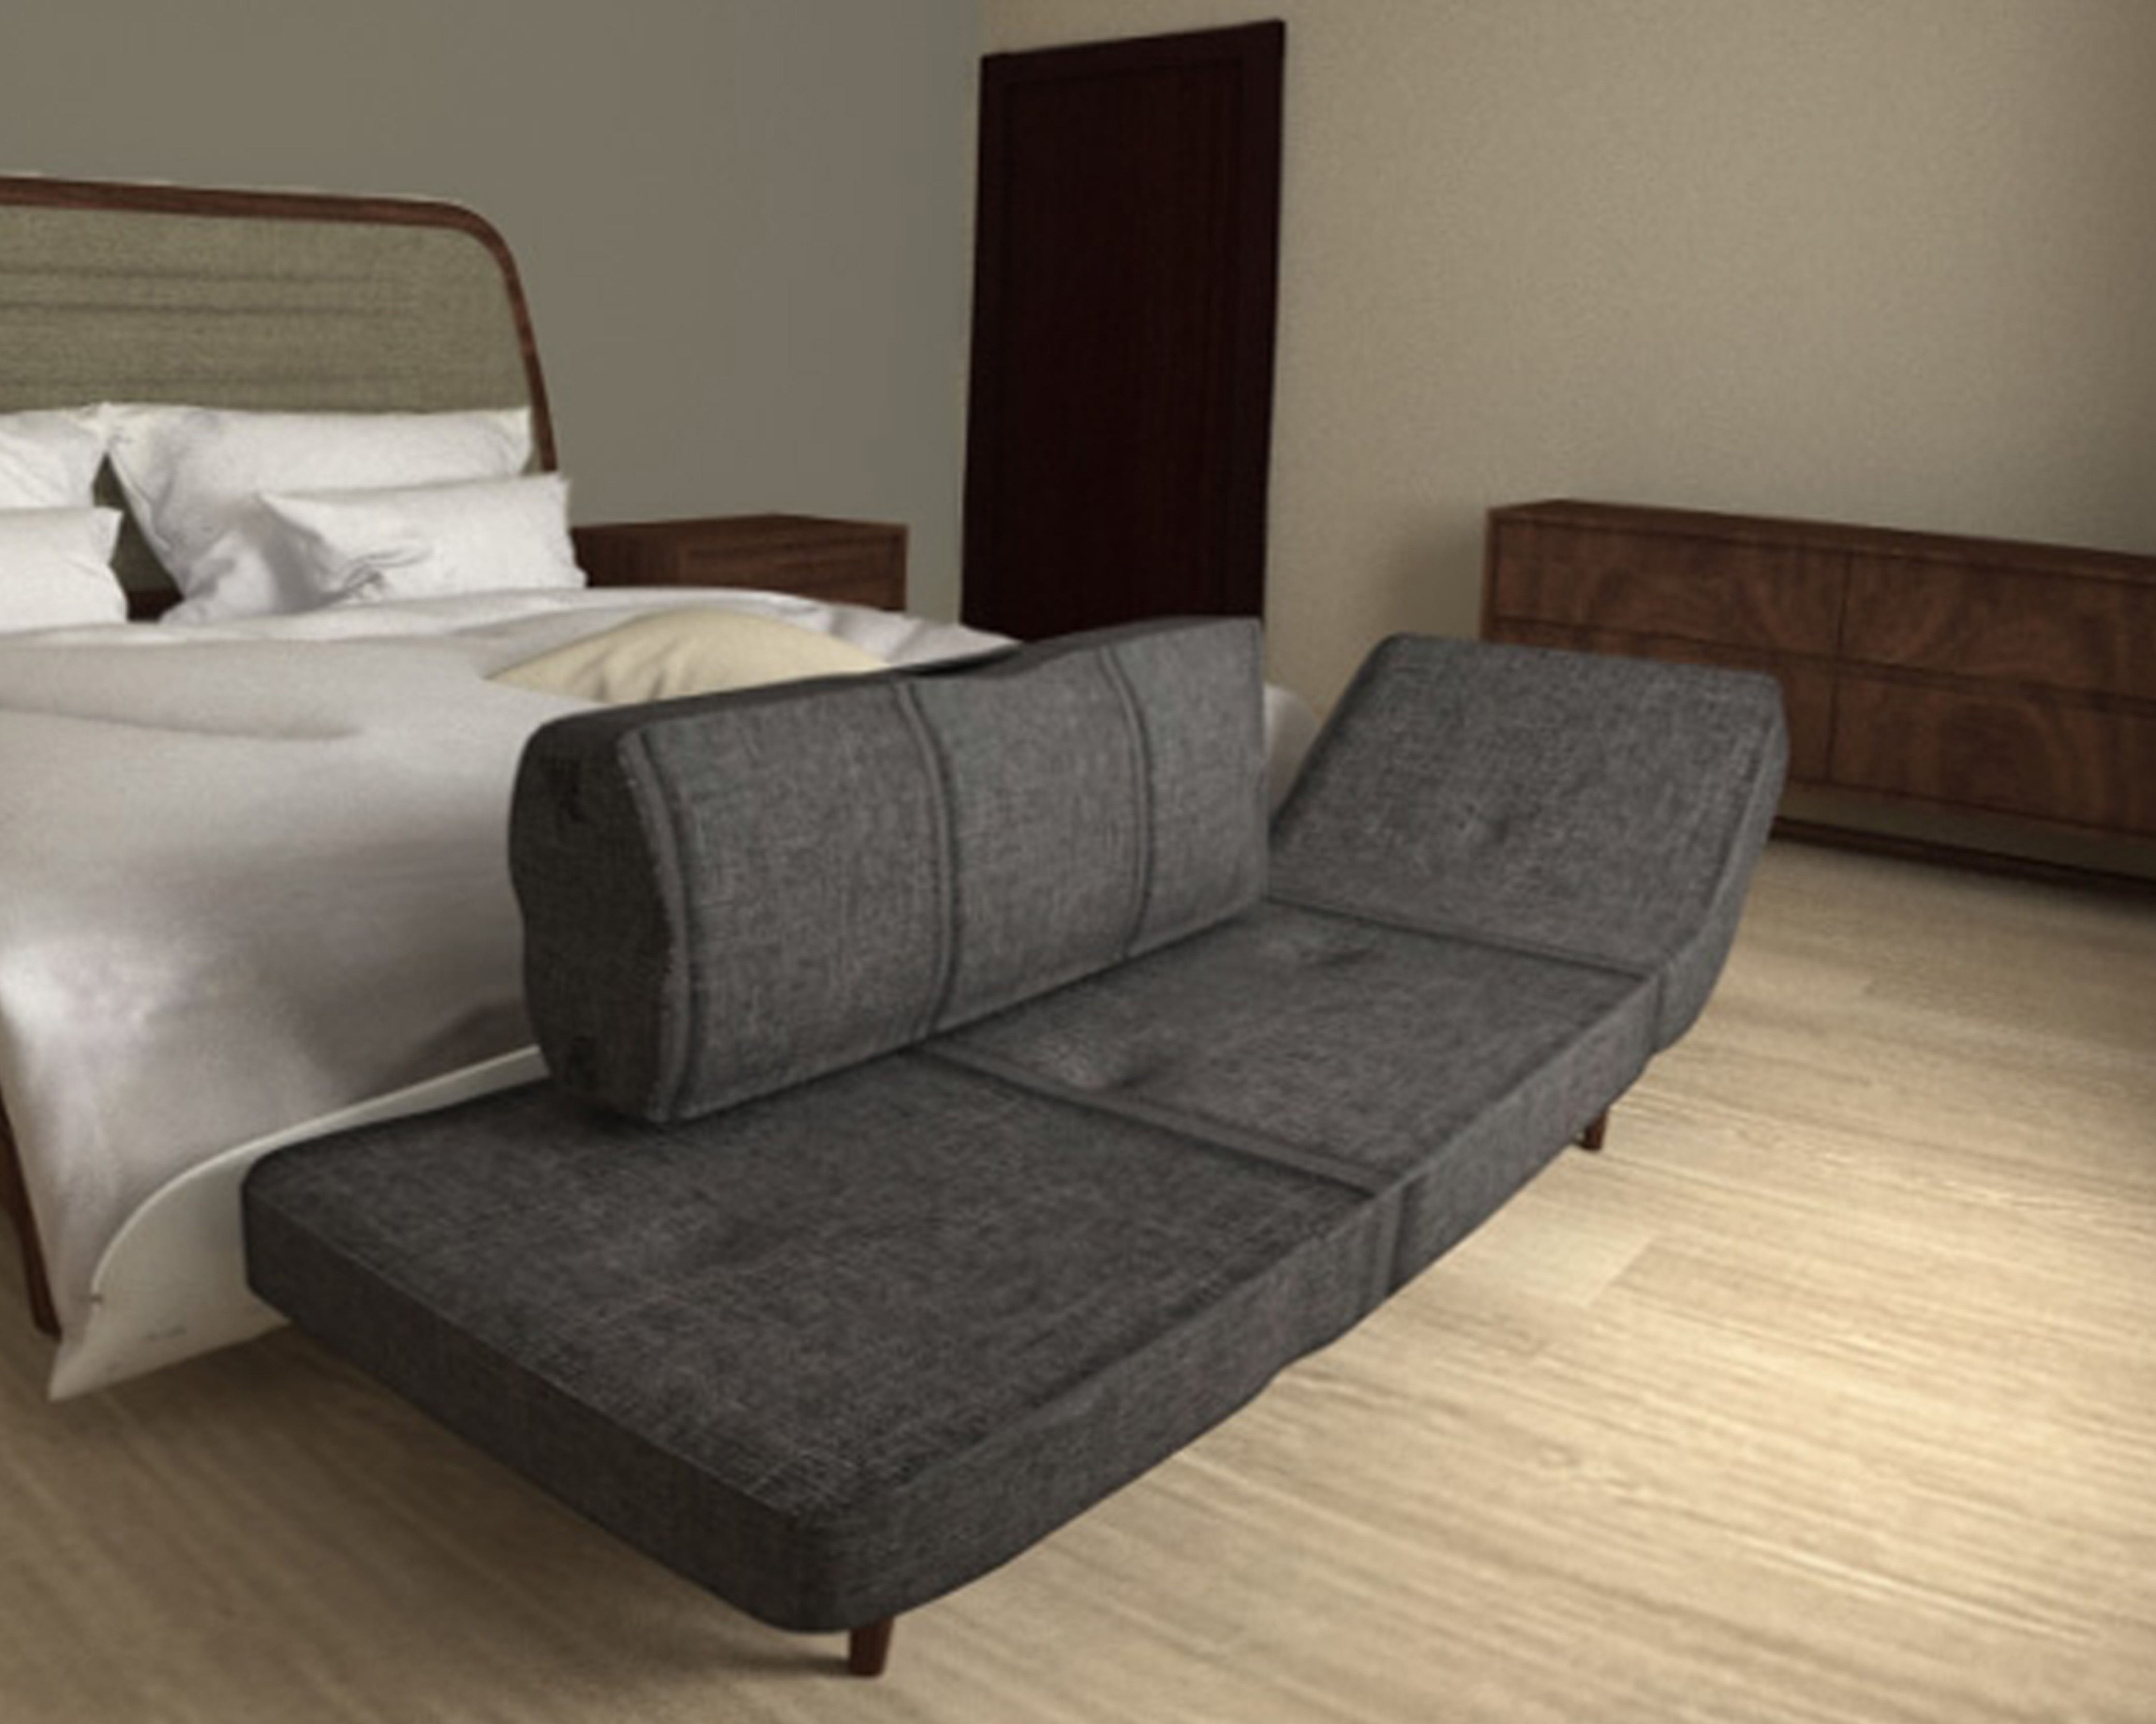 Sofa bed free 3d model game ready max for Sofa bed 3d model